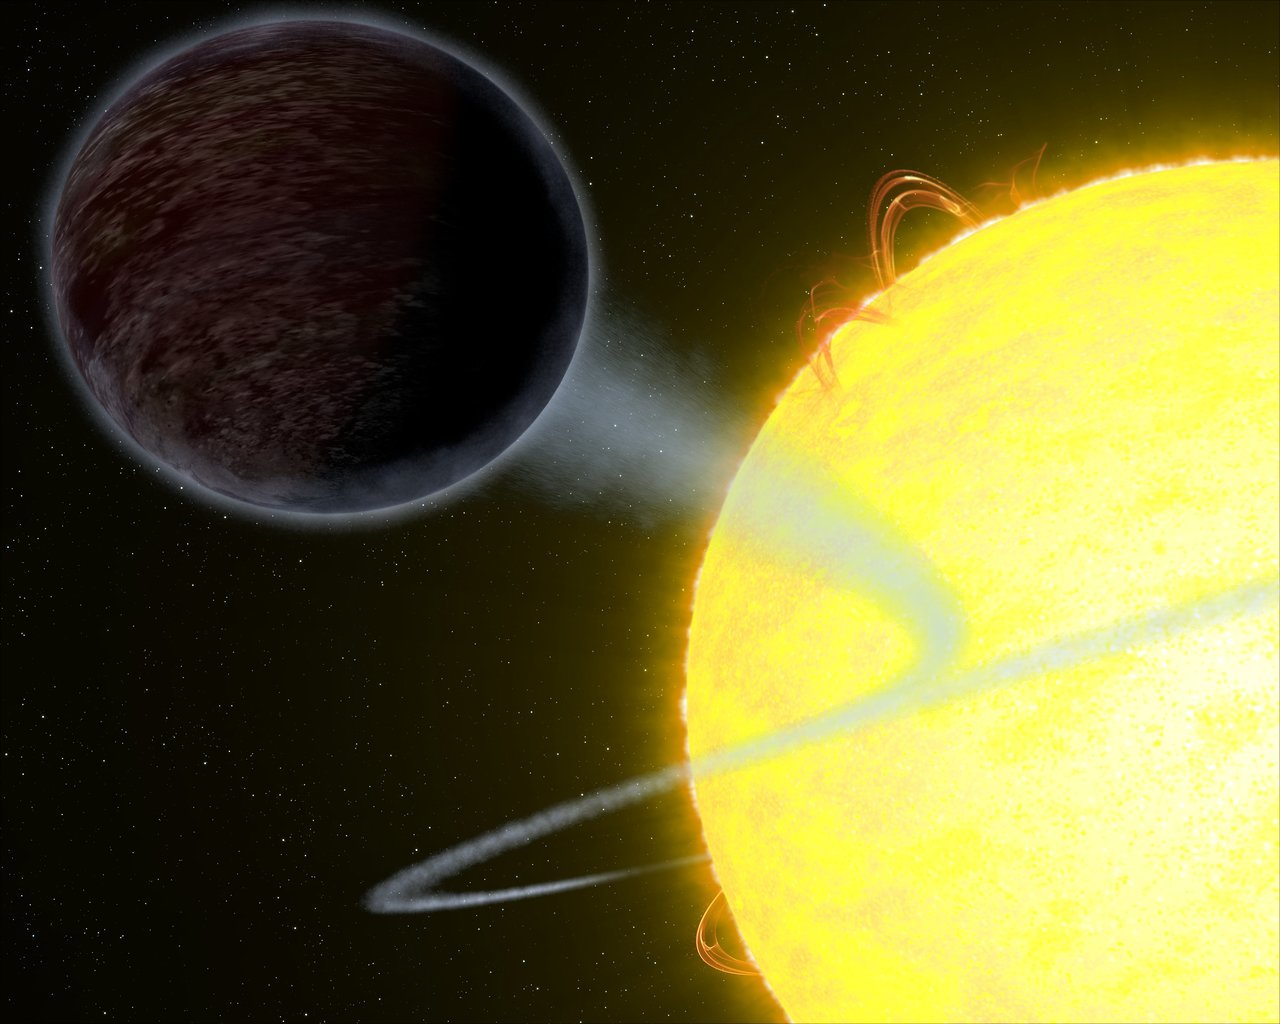 Illustration of a black planet orbiting its star.